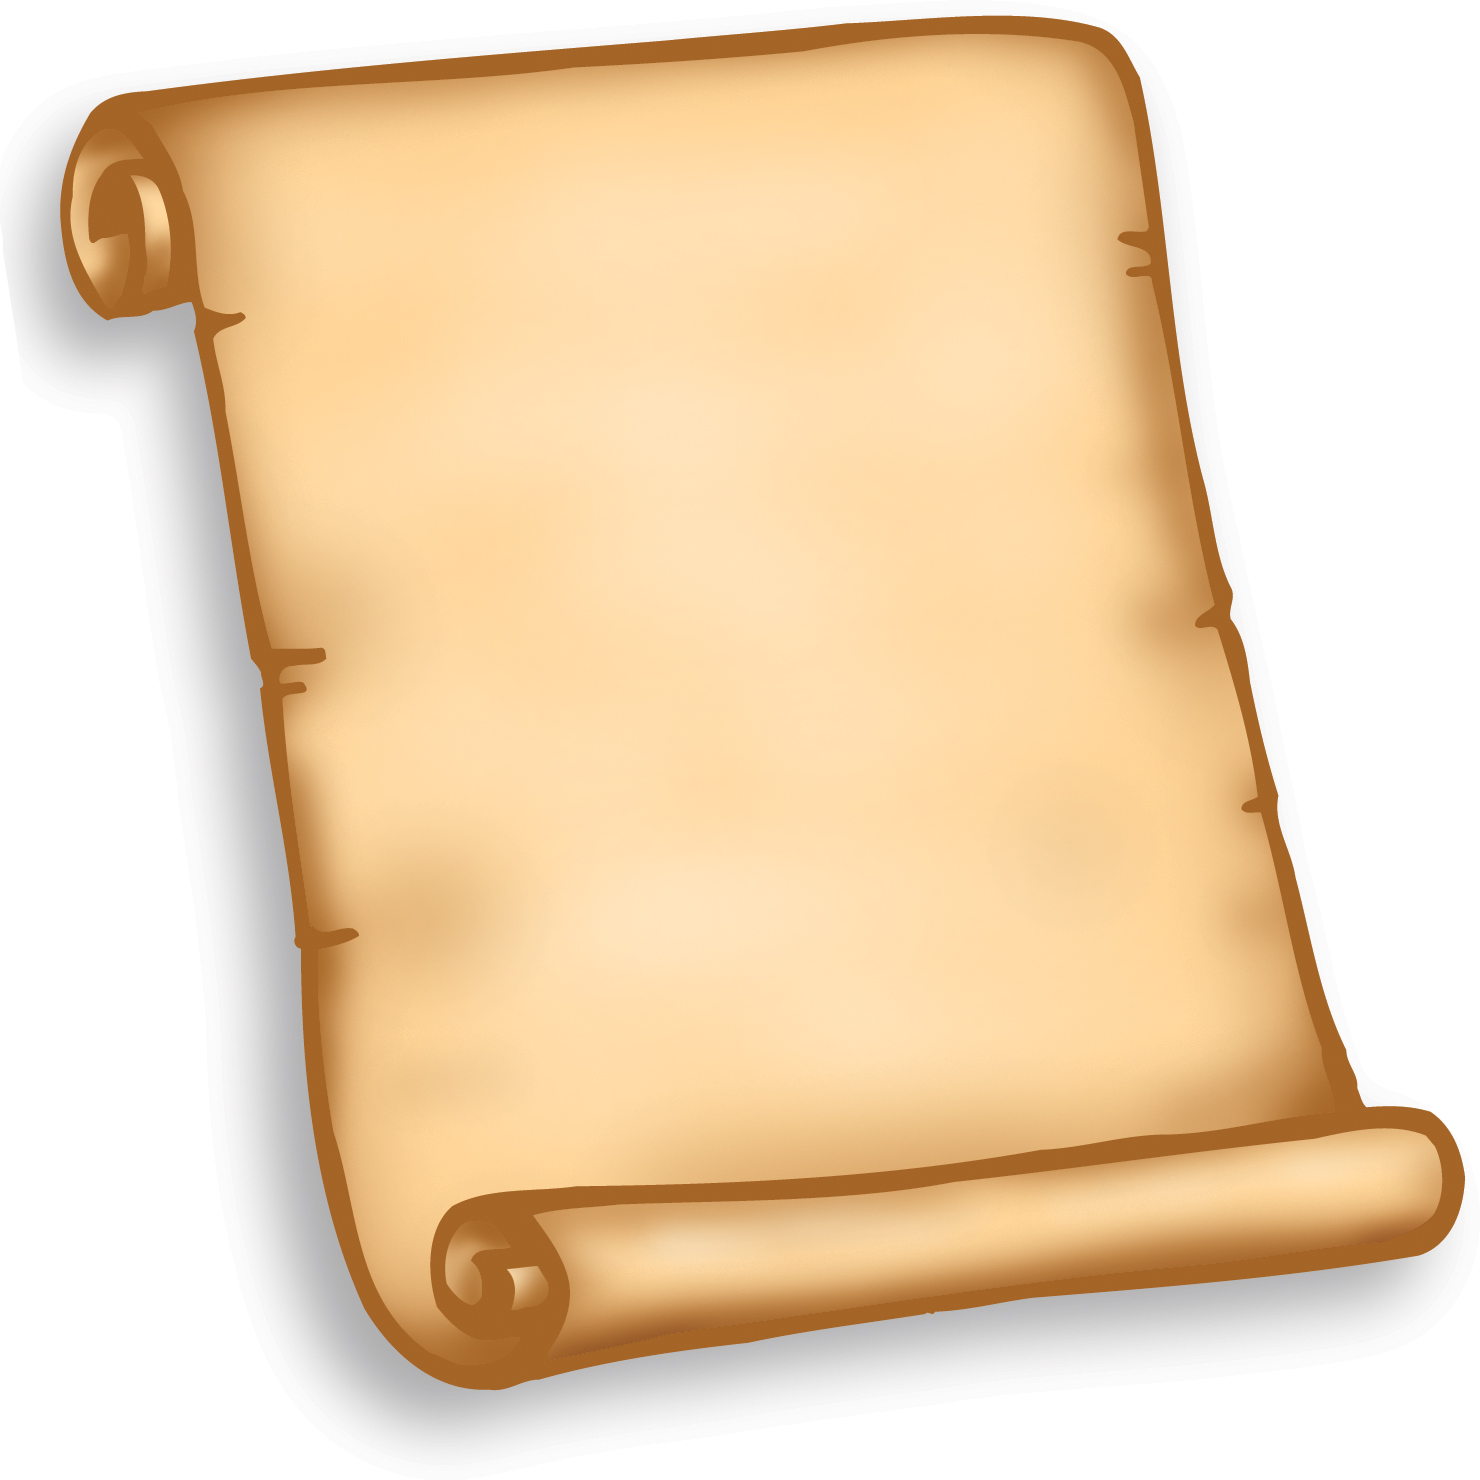 Blank scroll clipart top hd .